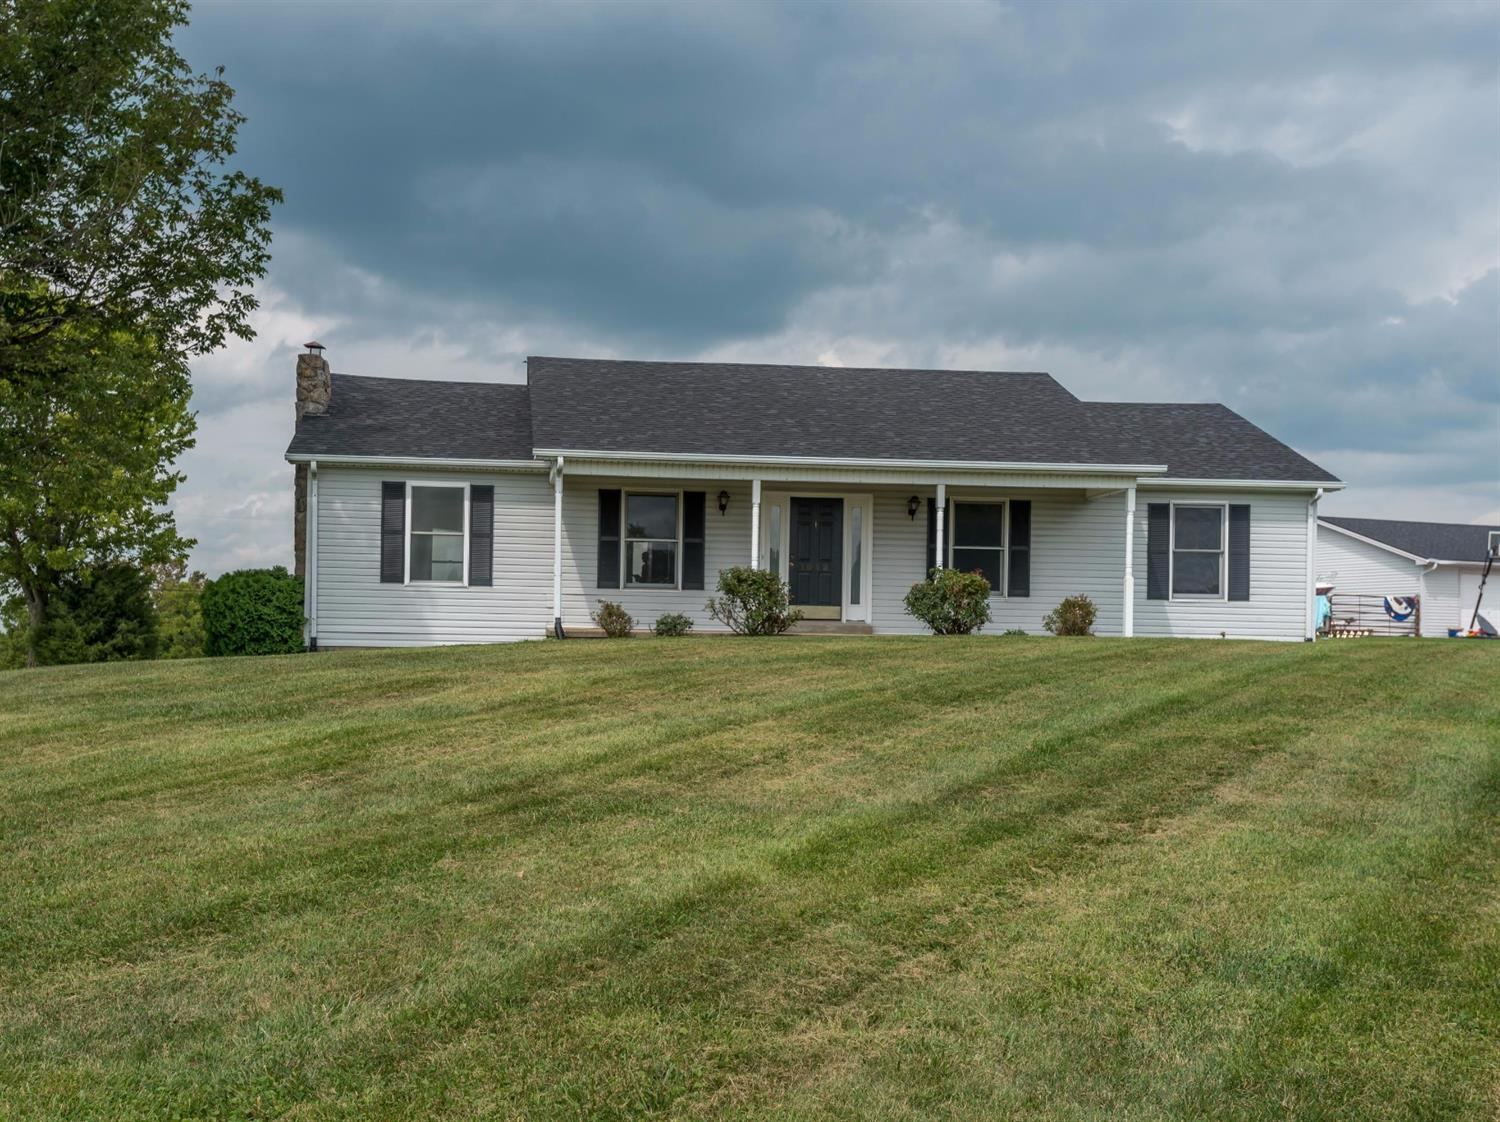 1012 Morris Dr, Richmond, KY 40475